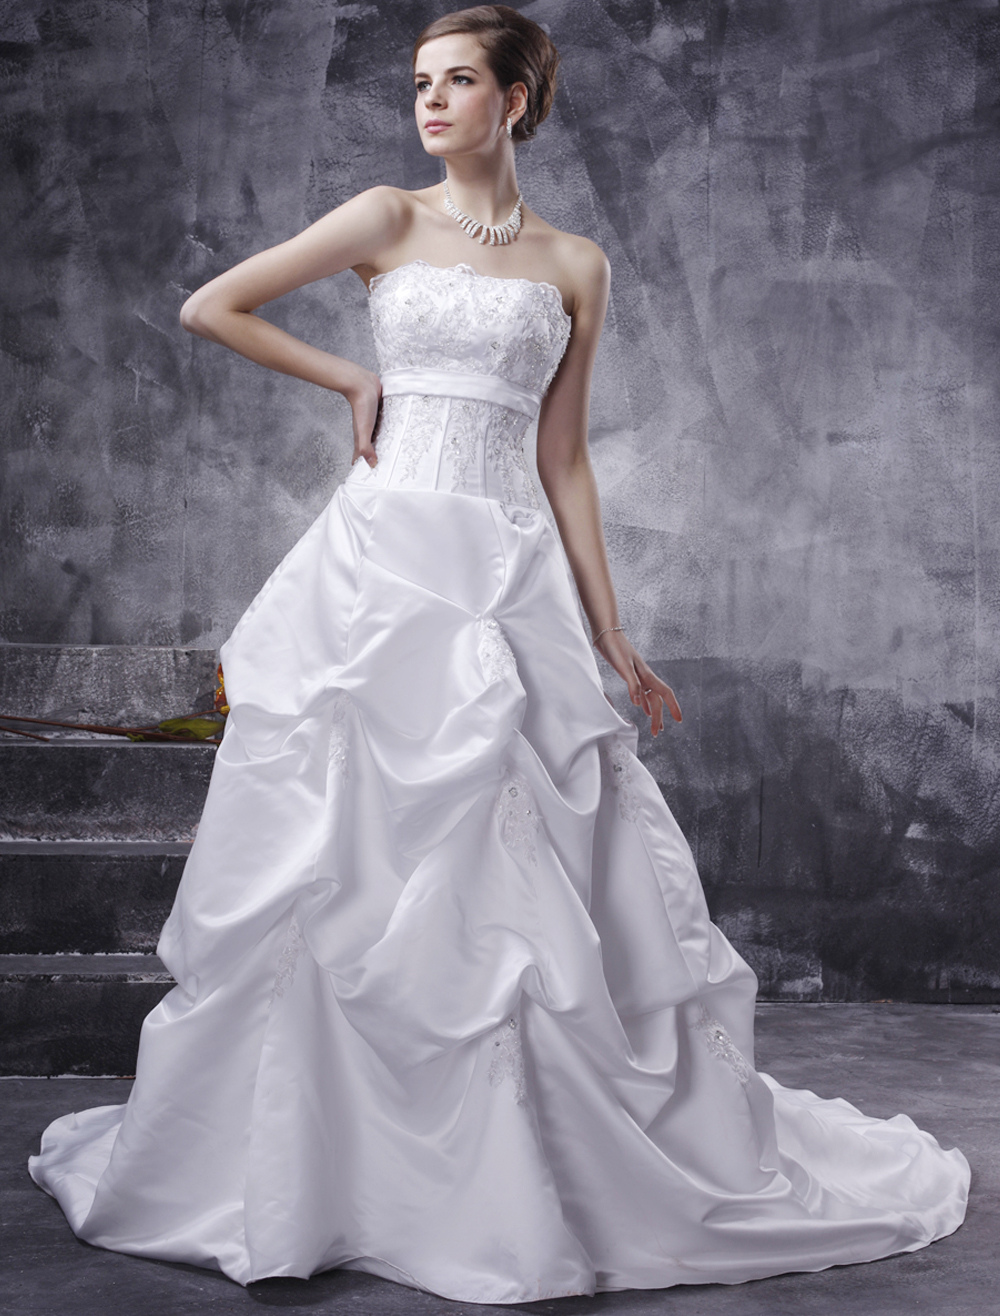 White Wedding Dresses Ball Gown Strapless Bridal Dress Satin Ruched Lace Beading Sash Court Train Wedding Gown